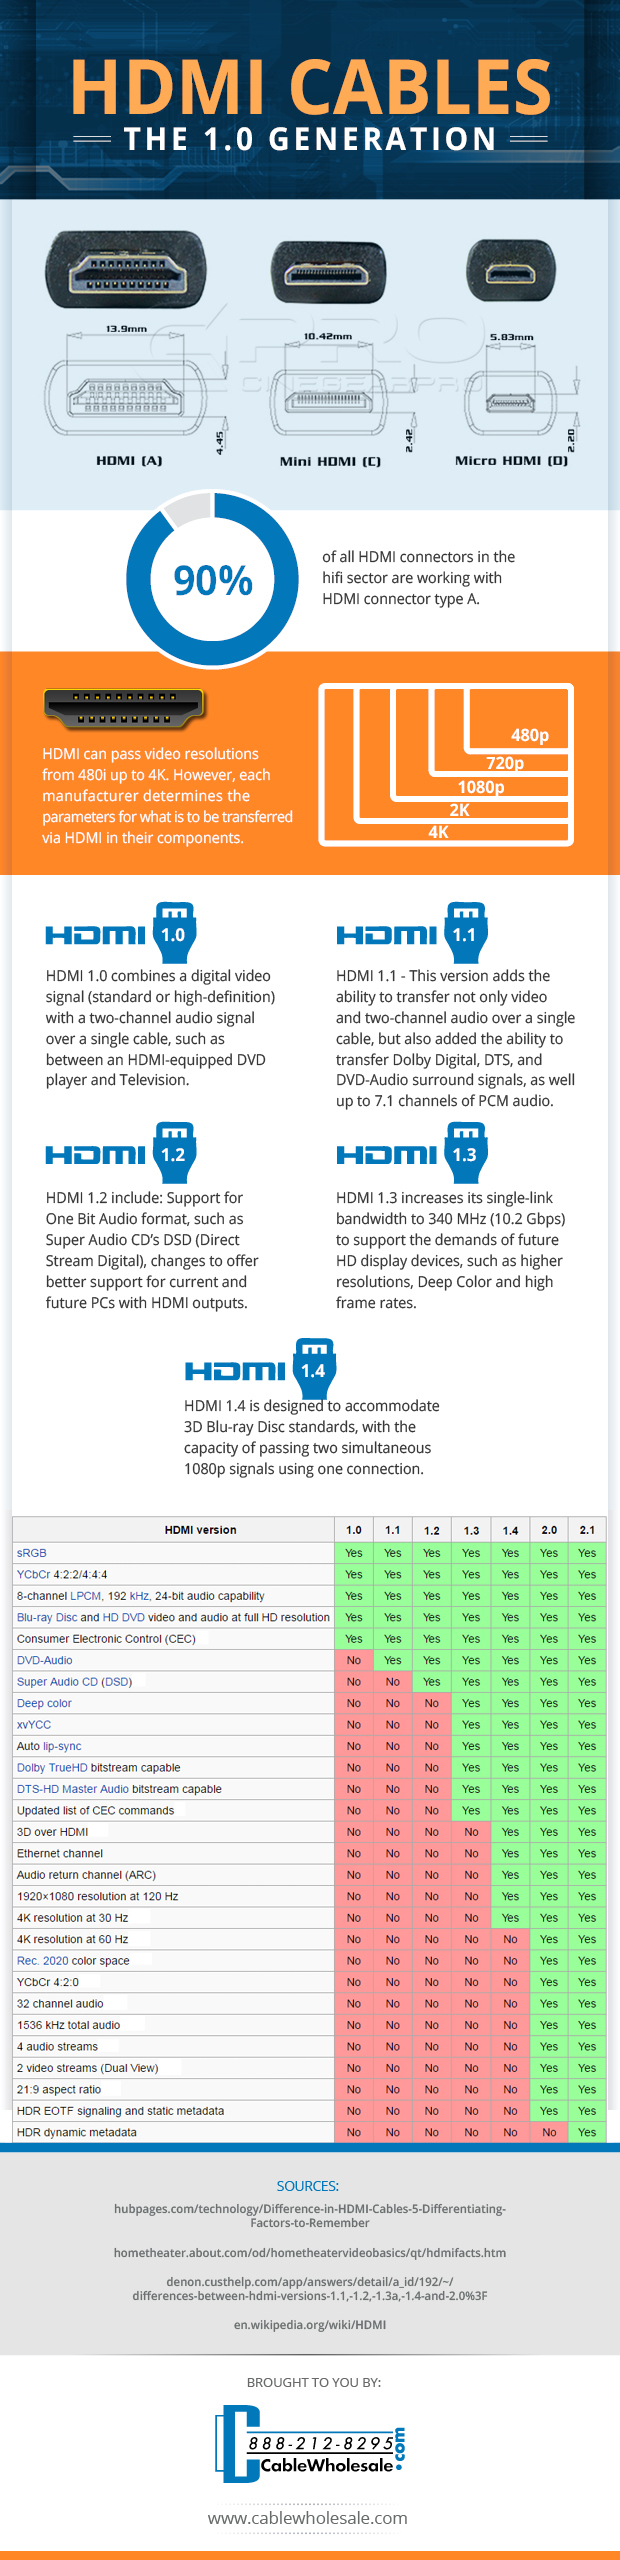 HDMI: The 1.0 Generation Explained